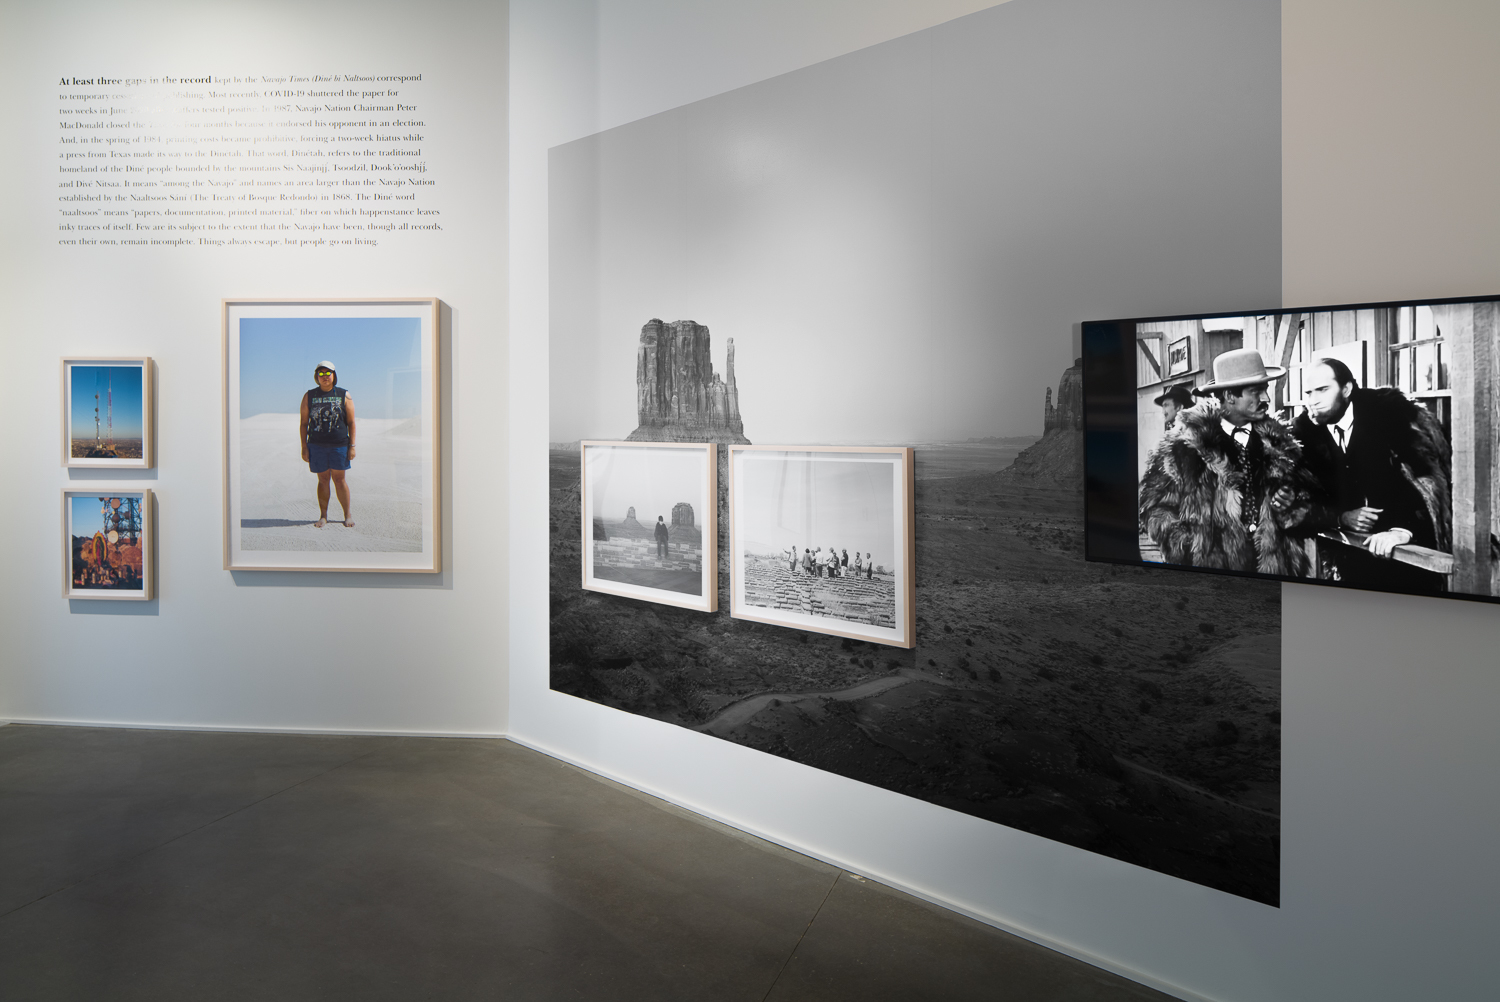 A wall in an art gallery depicts various photographs of Western landscapes, both framed and emblazoned on the wall itself, along with a video screen displaying an image of a black-and-white film